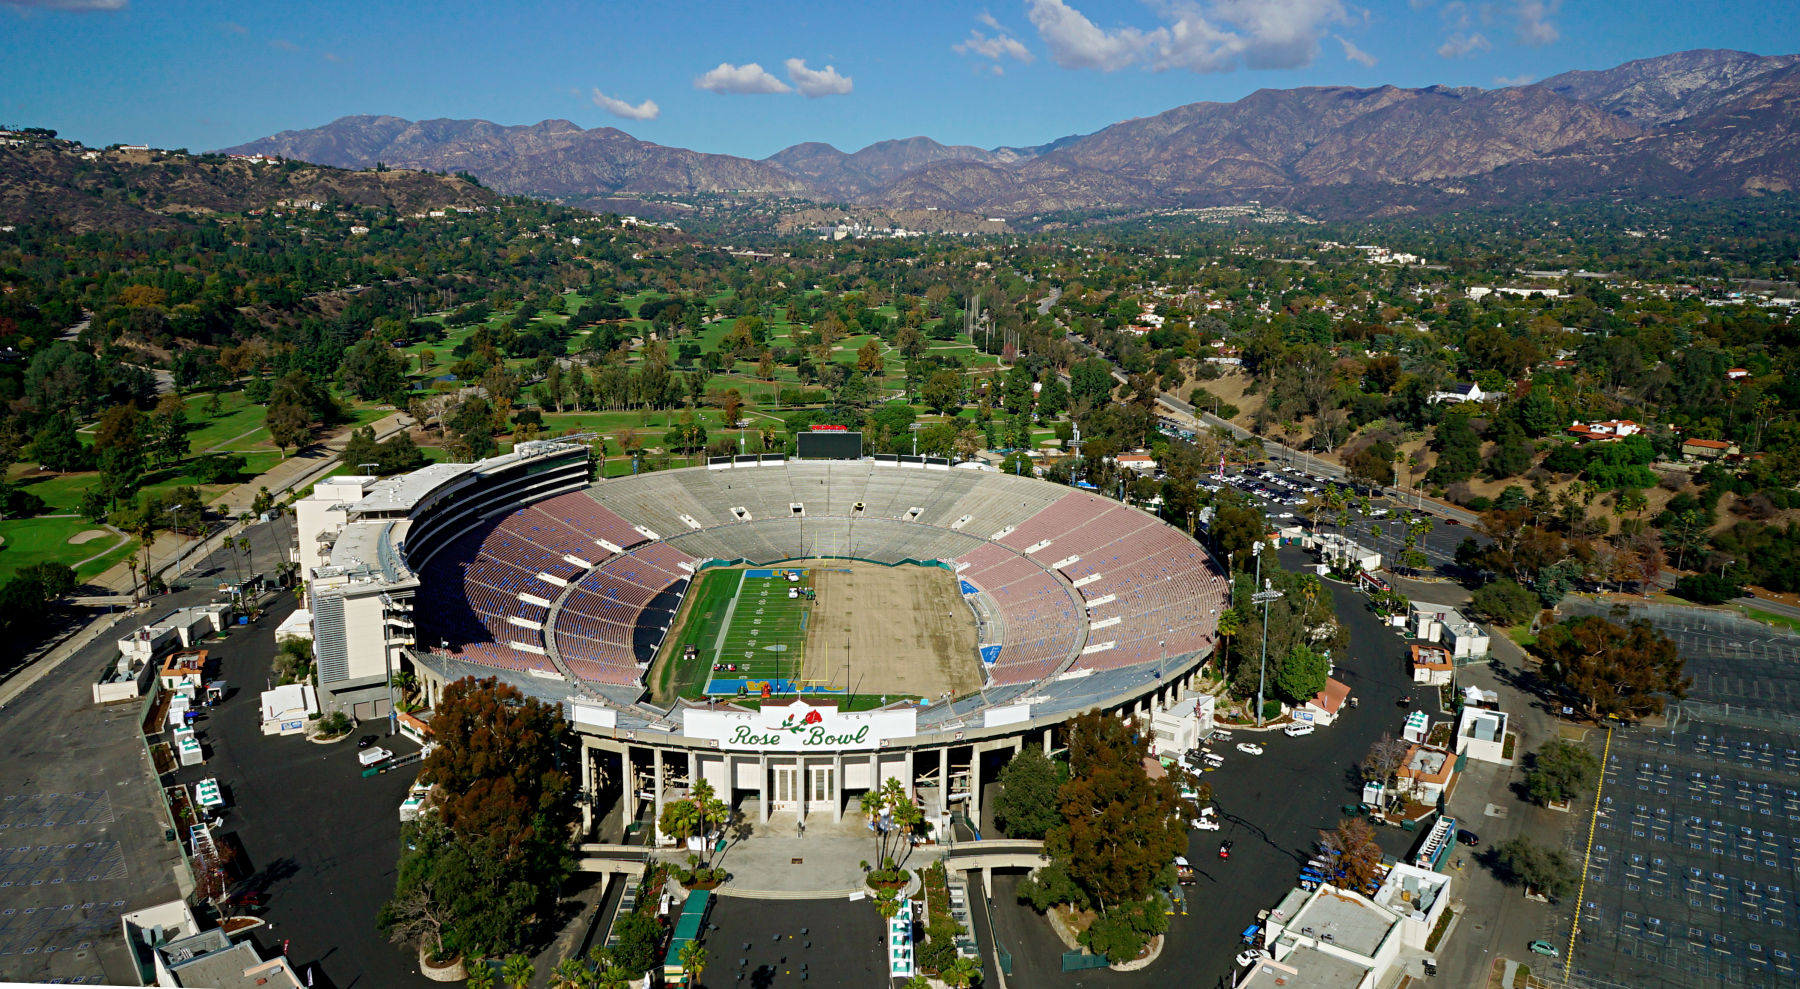 charitybuzz 2 tix to the 2015 rose bowl game on jan 1 plus vip grand lot 716200. Black Bedroom Furniture Sets. Home Design Ideas